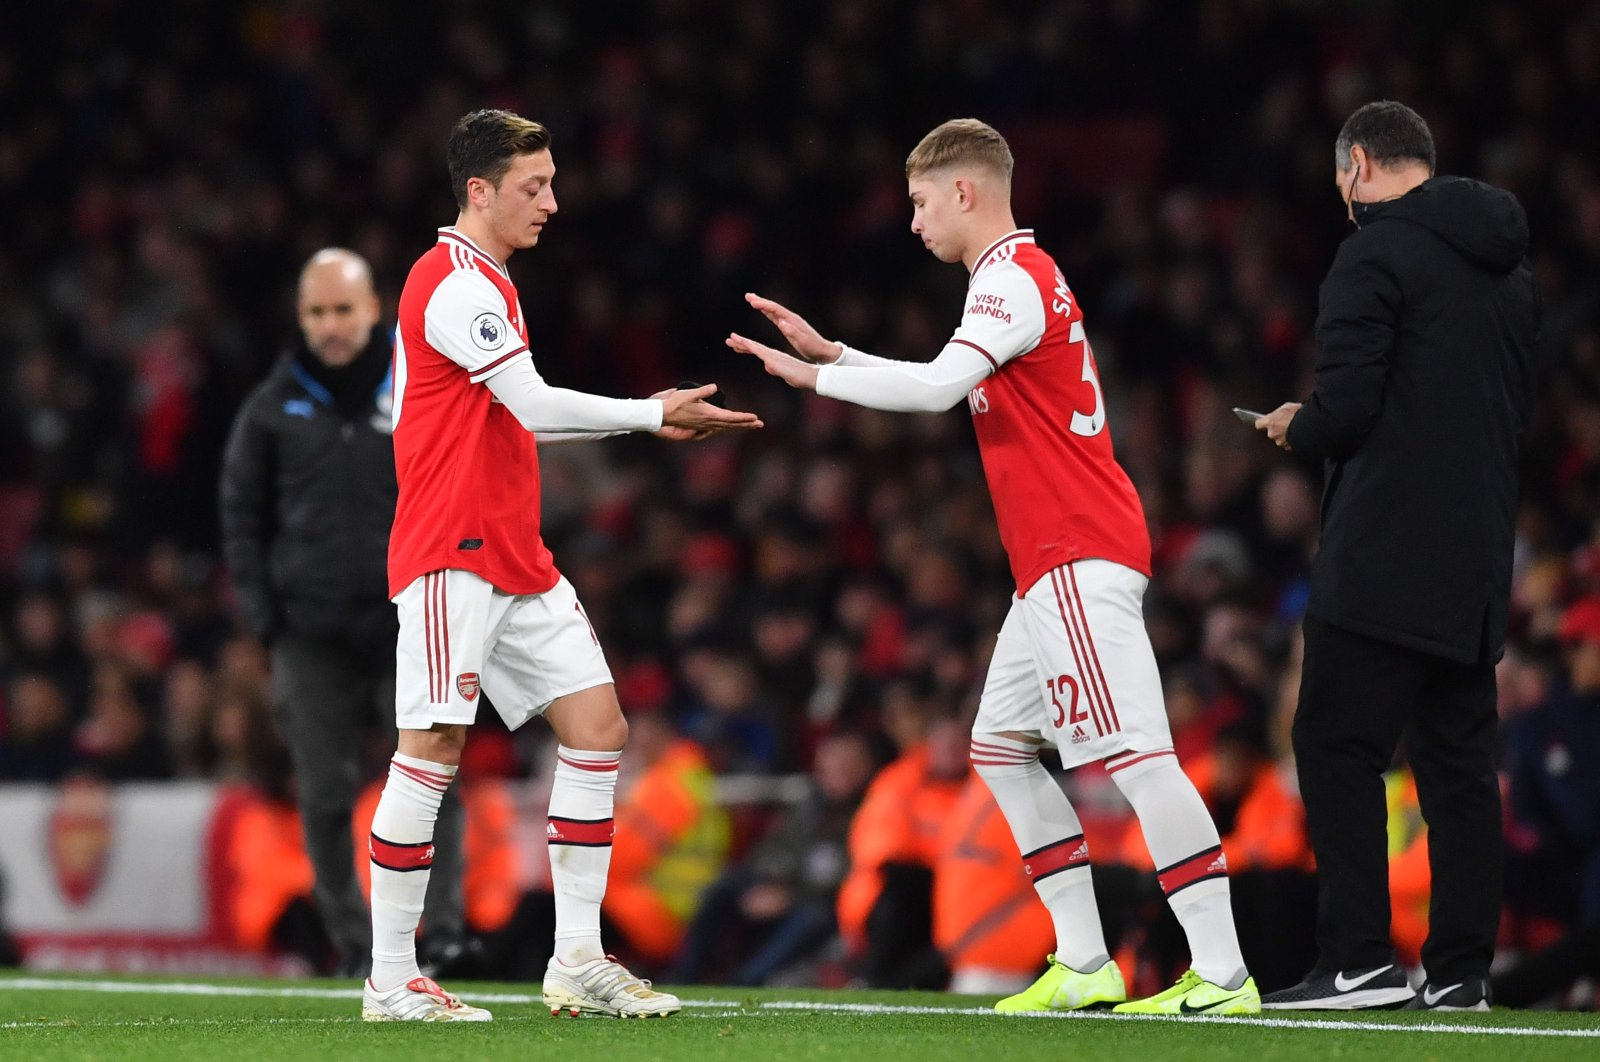 Mesut Özil (L) is substituted for Emile Smith Rowe during a match in London, Dec. 15, 2019. (AFP Photo)